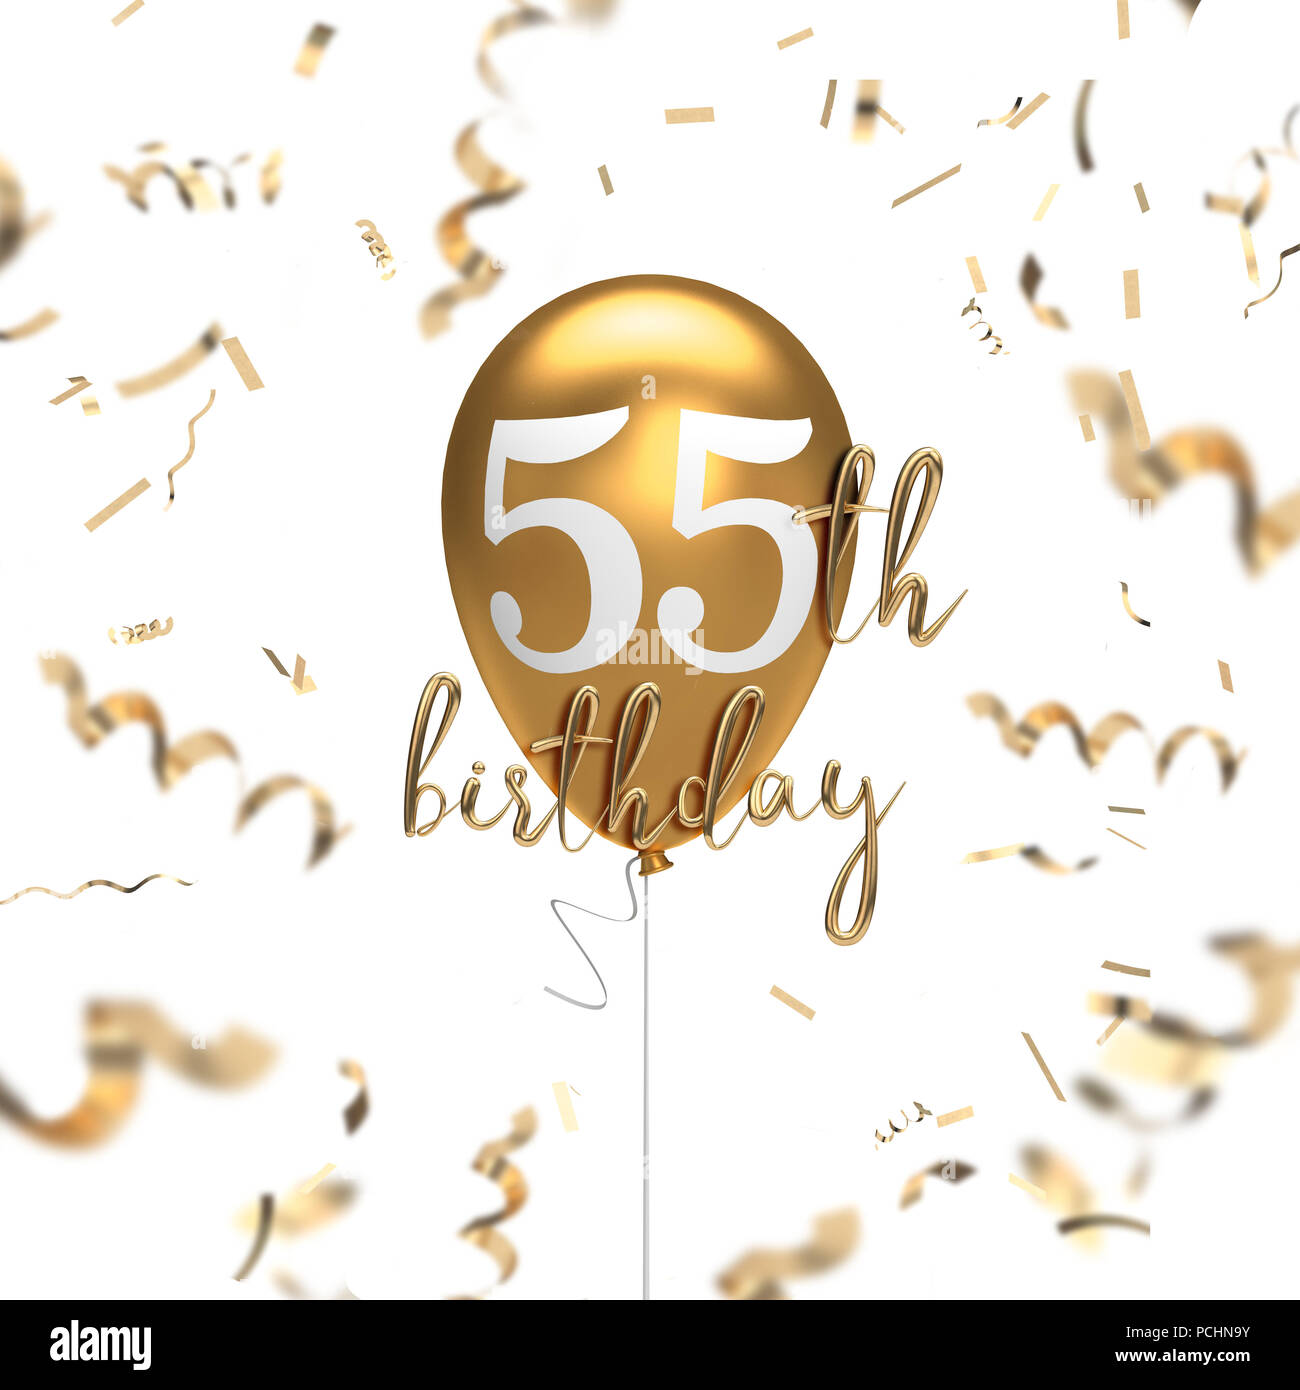 https www alamy com happy 55th birthday gold balloon greeting background 3d rendering image214290215 html